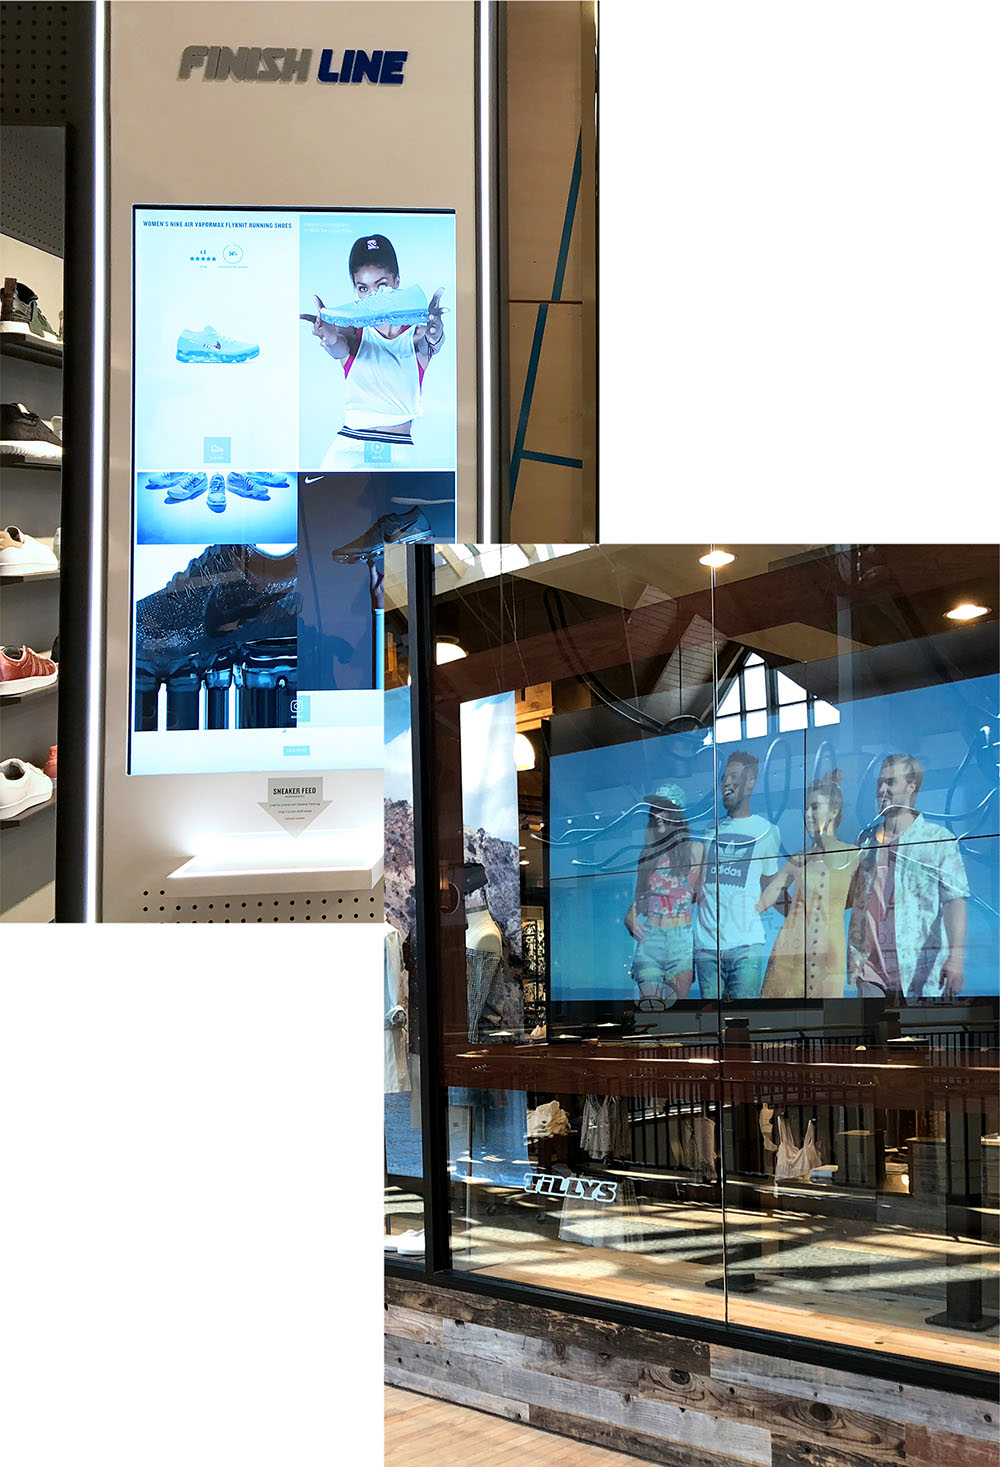 Video Wall and Touch Kiosk in Retail